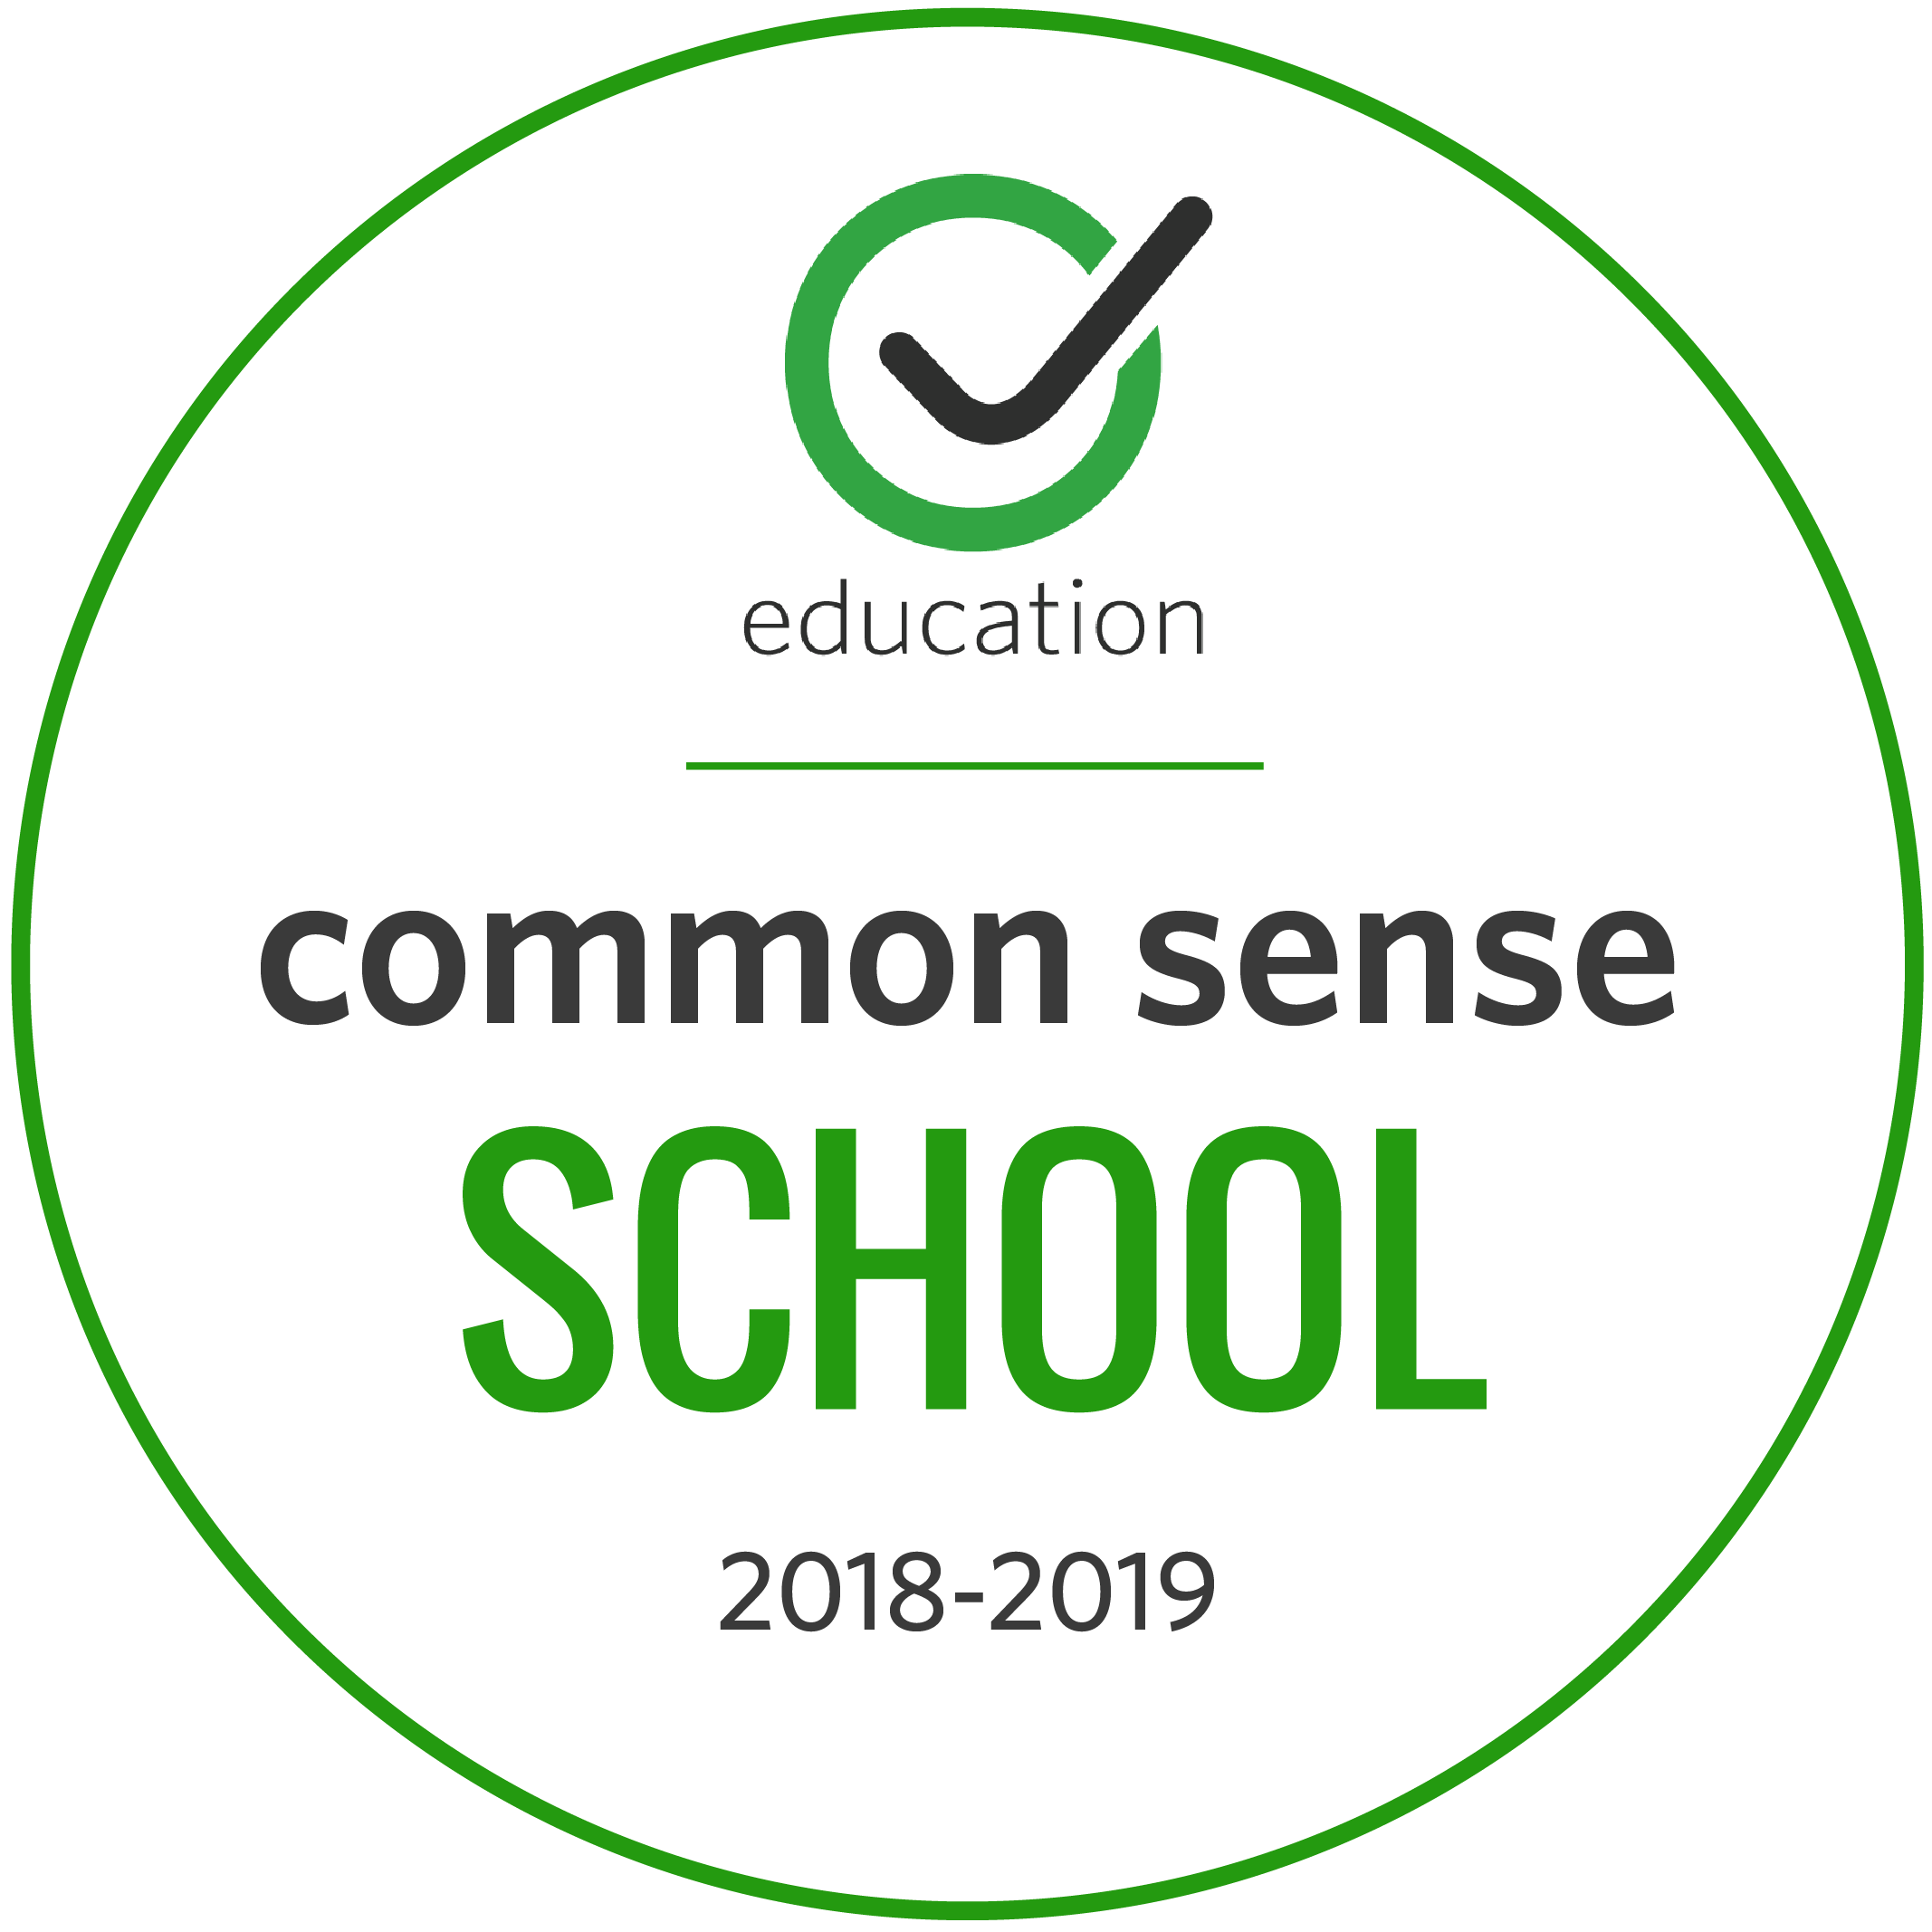 Common Sense School 2018-2019